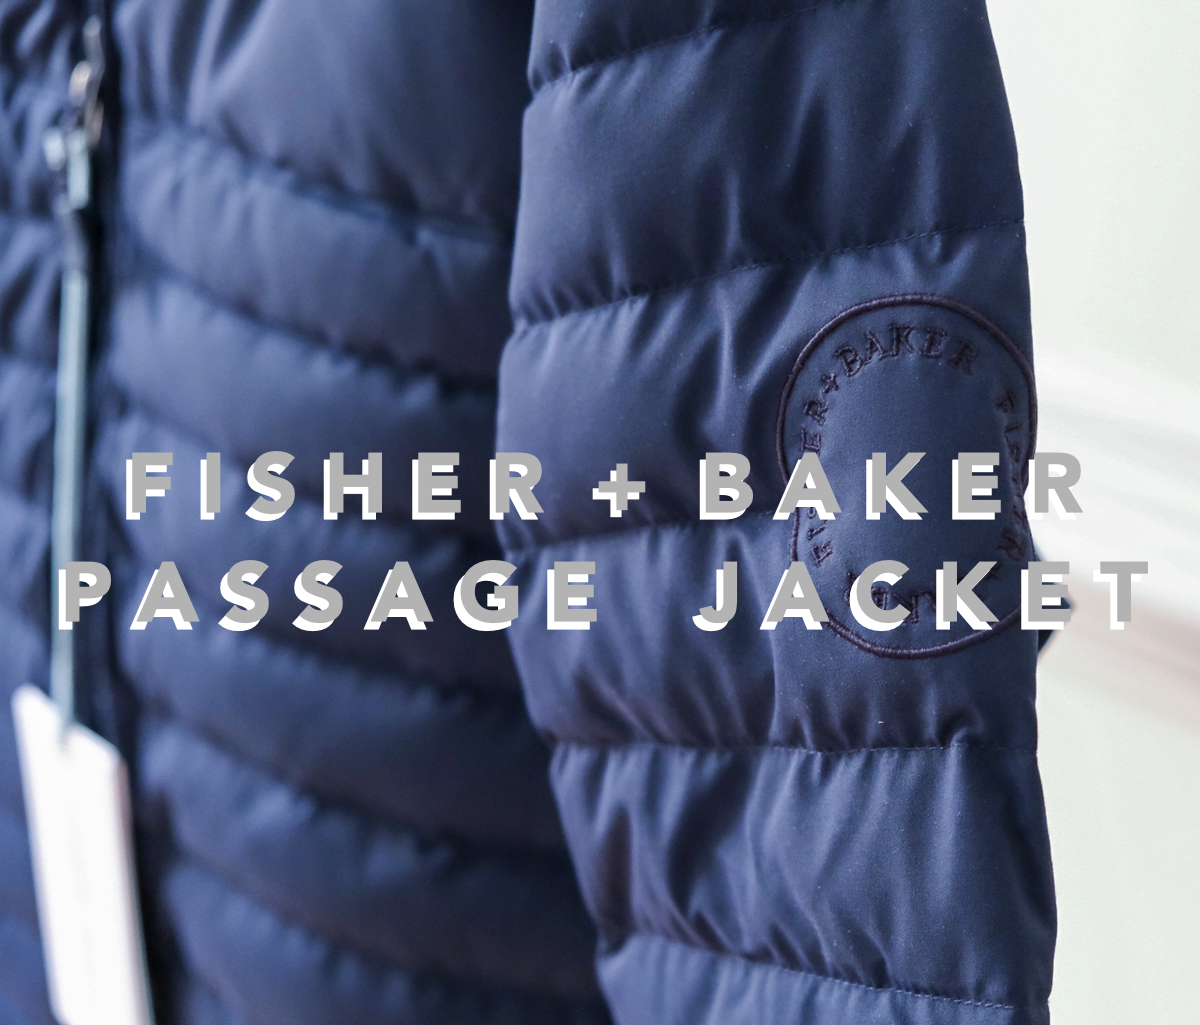 In Hand: The Fisher + Baker Passage Jacket